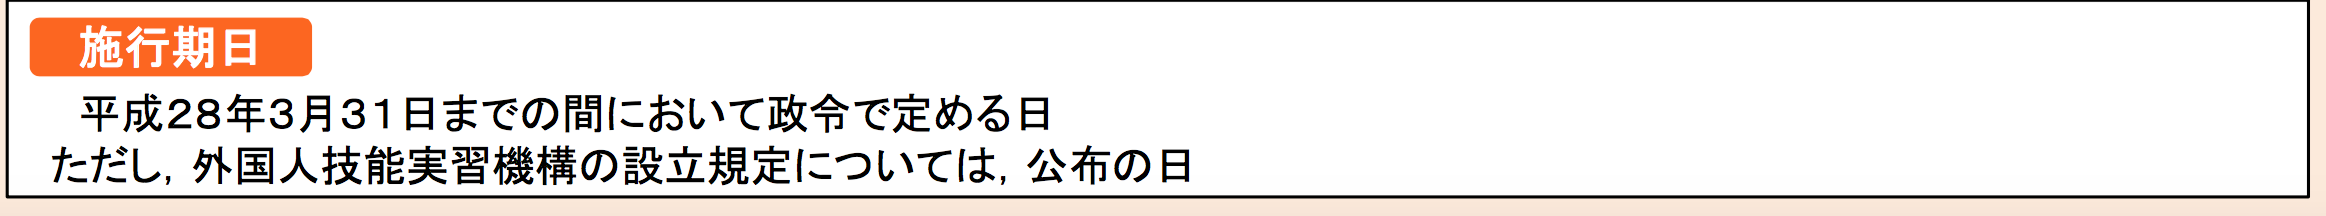 20150908031717443.png